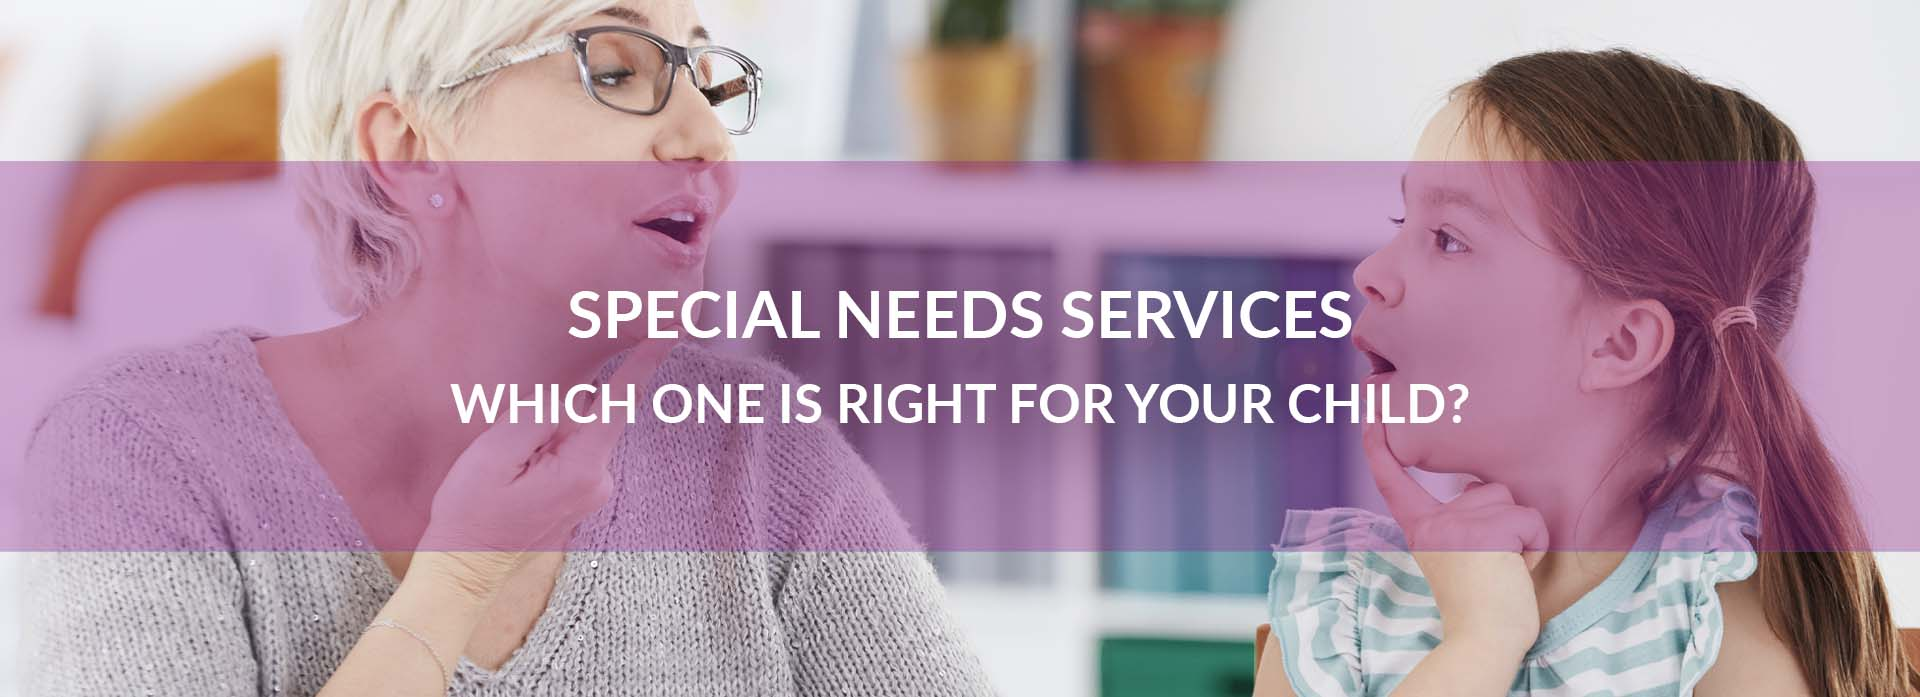 Special Needs Services - Which One Is Right For Your Child?